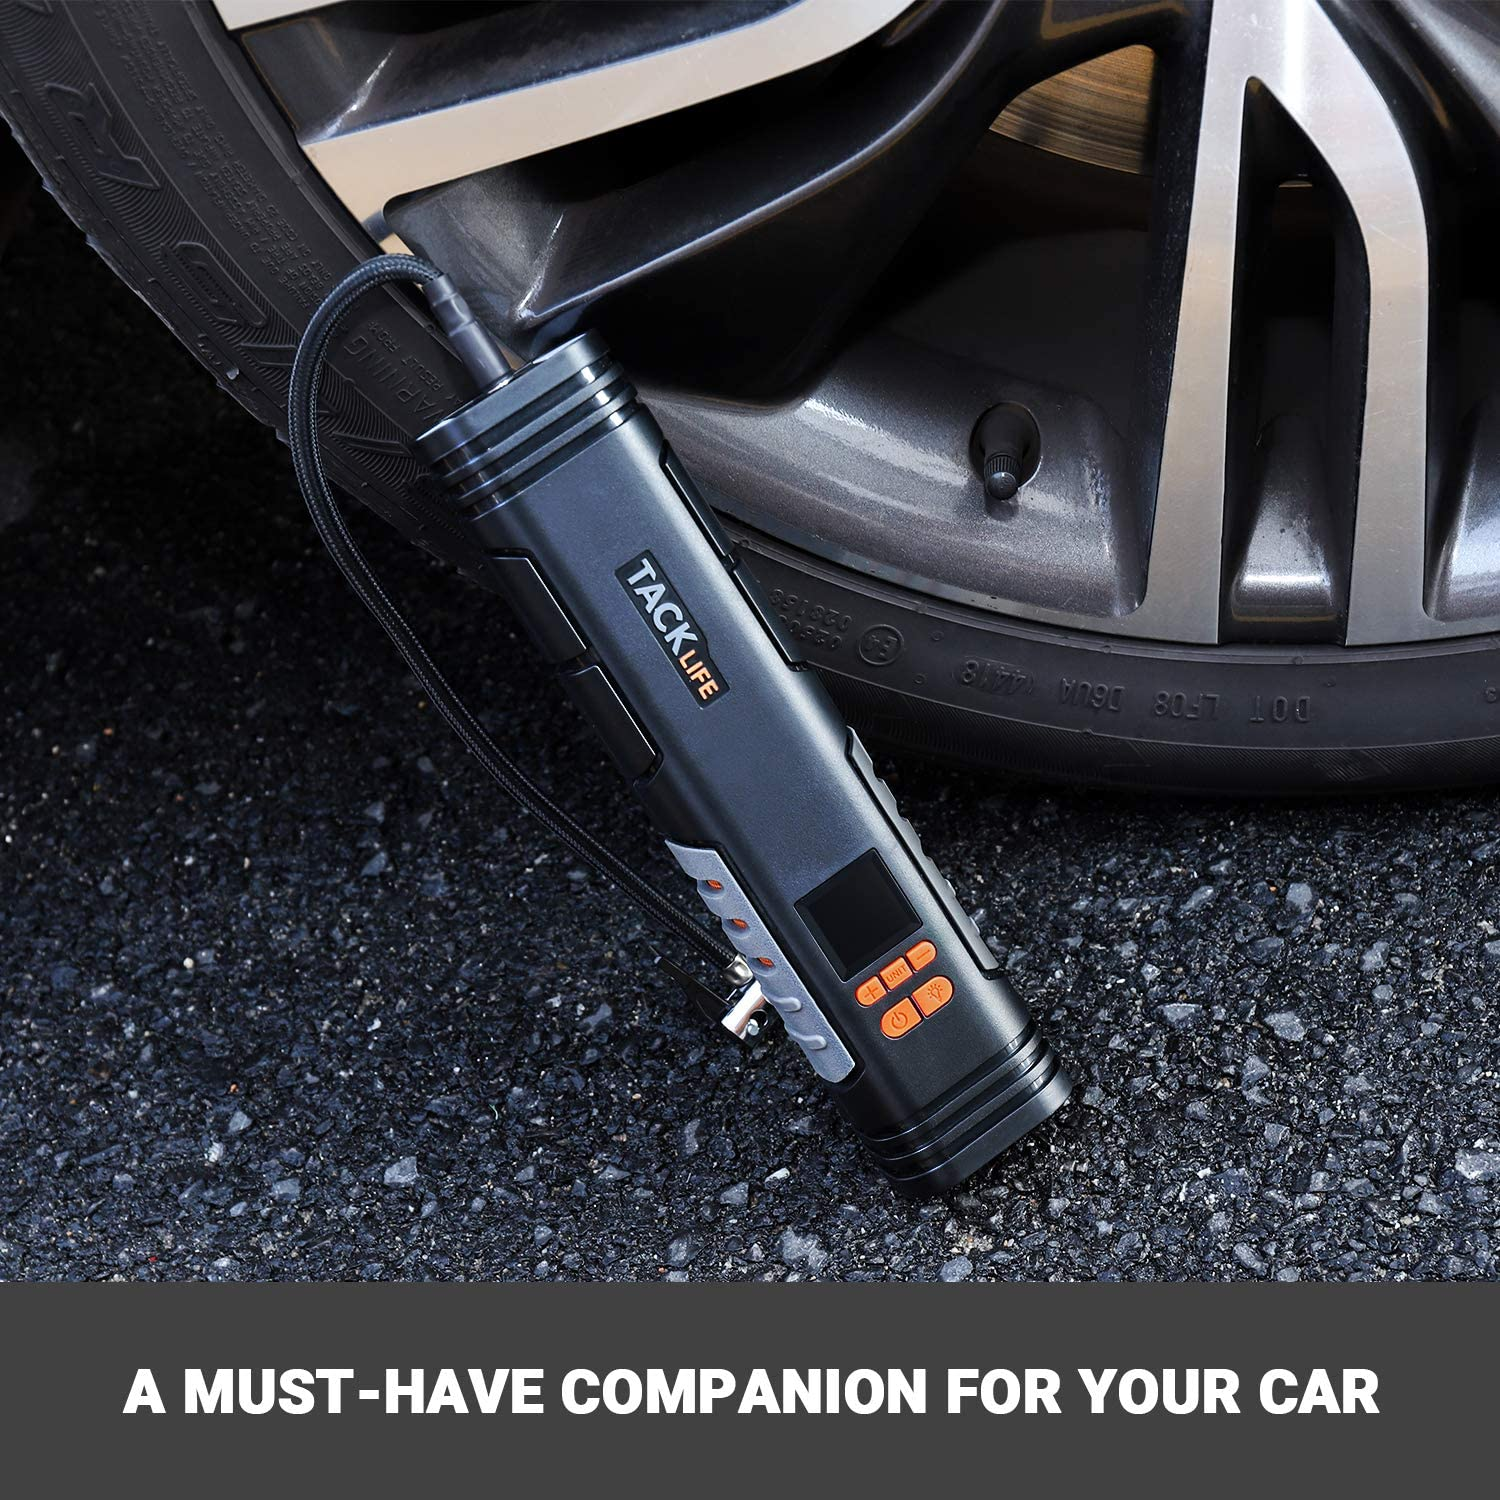 TACKLIFE X1 Rechargeable Cordless Tire Inflator Portable Air Pump with Digital Display for Car Bike Tires and Other Inflatables Handheld Air Compressor